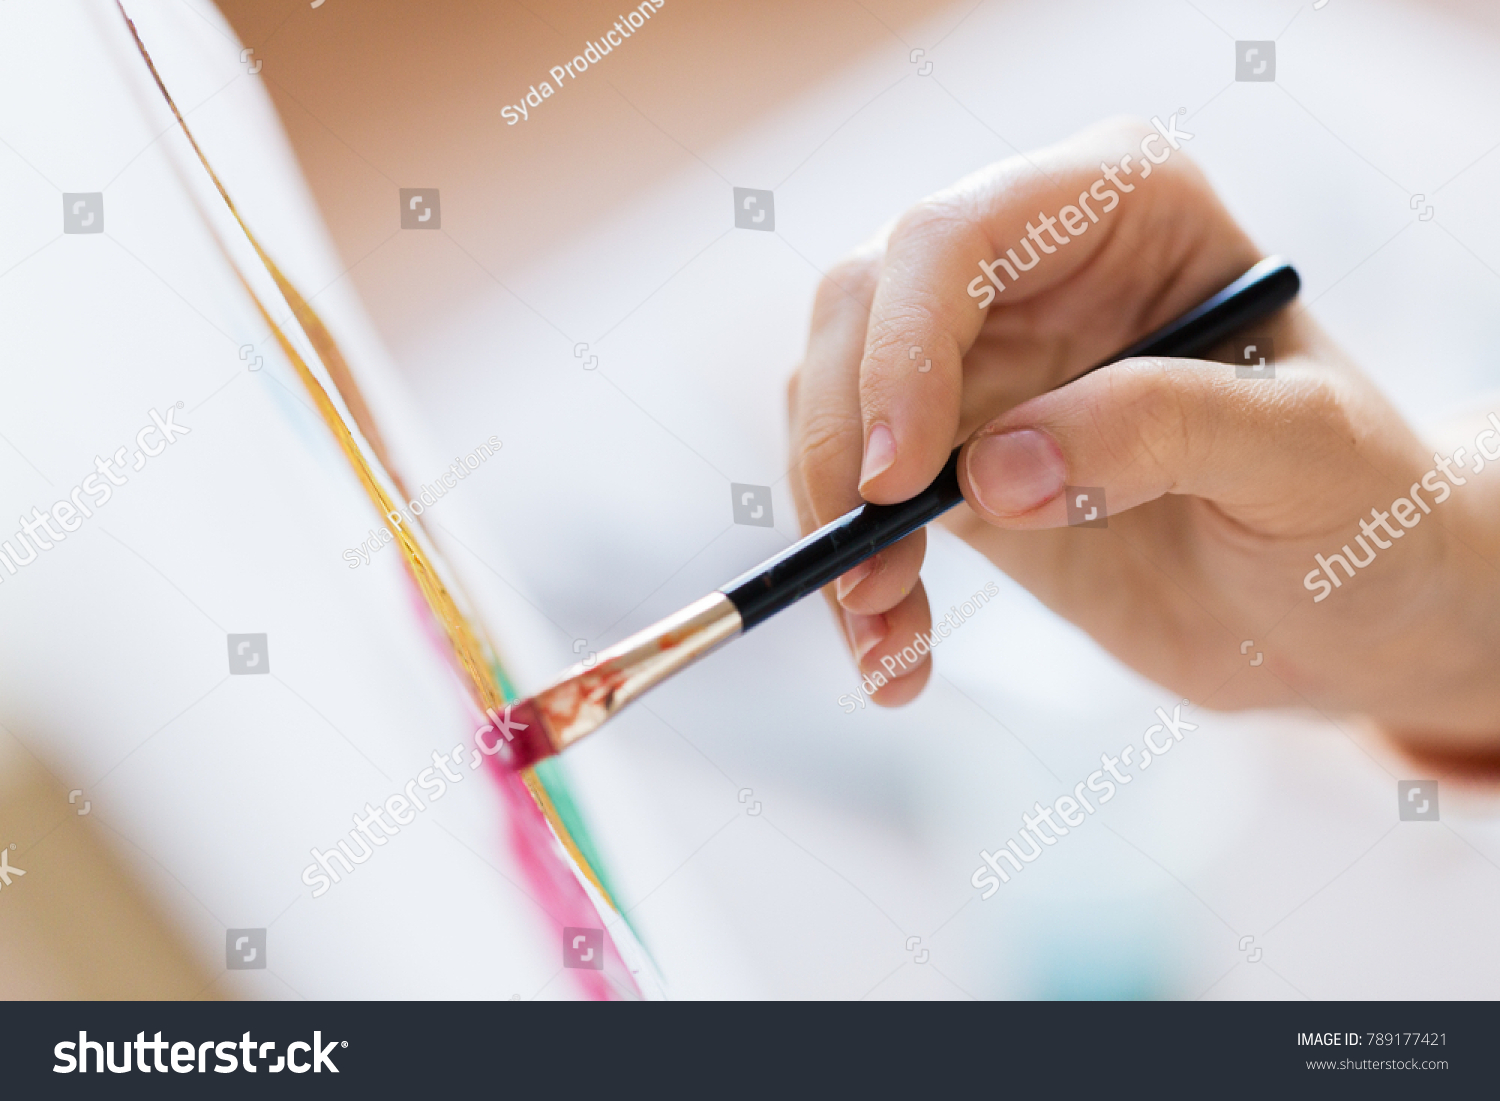 art, creativity and people concept - hand of artist with brush painting picture #789177421